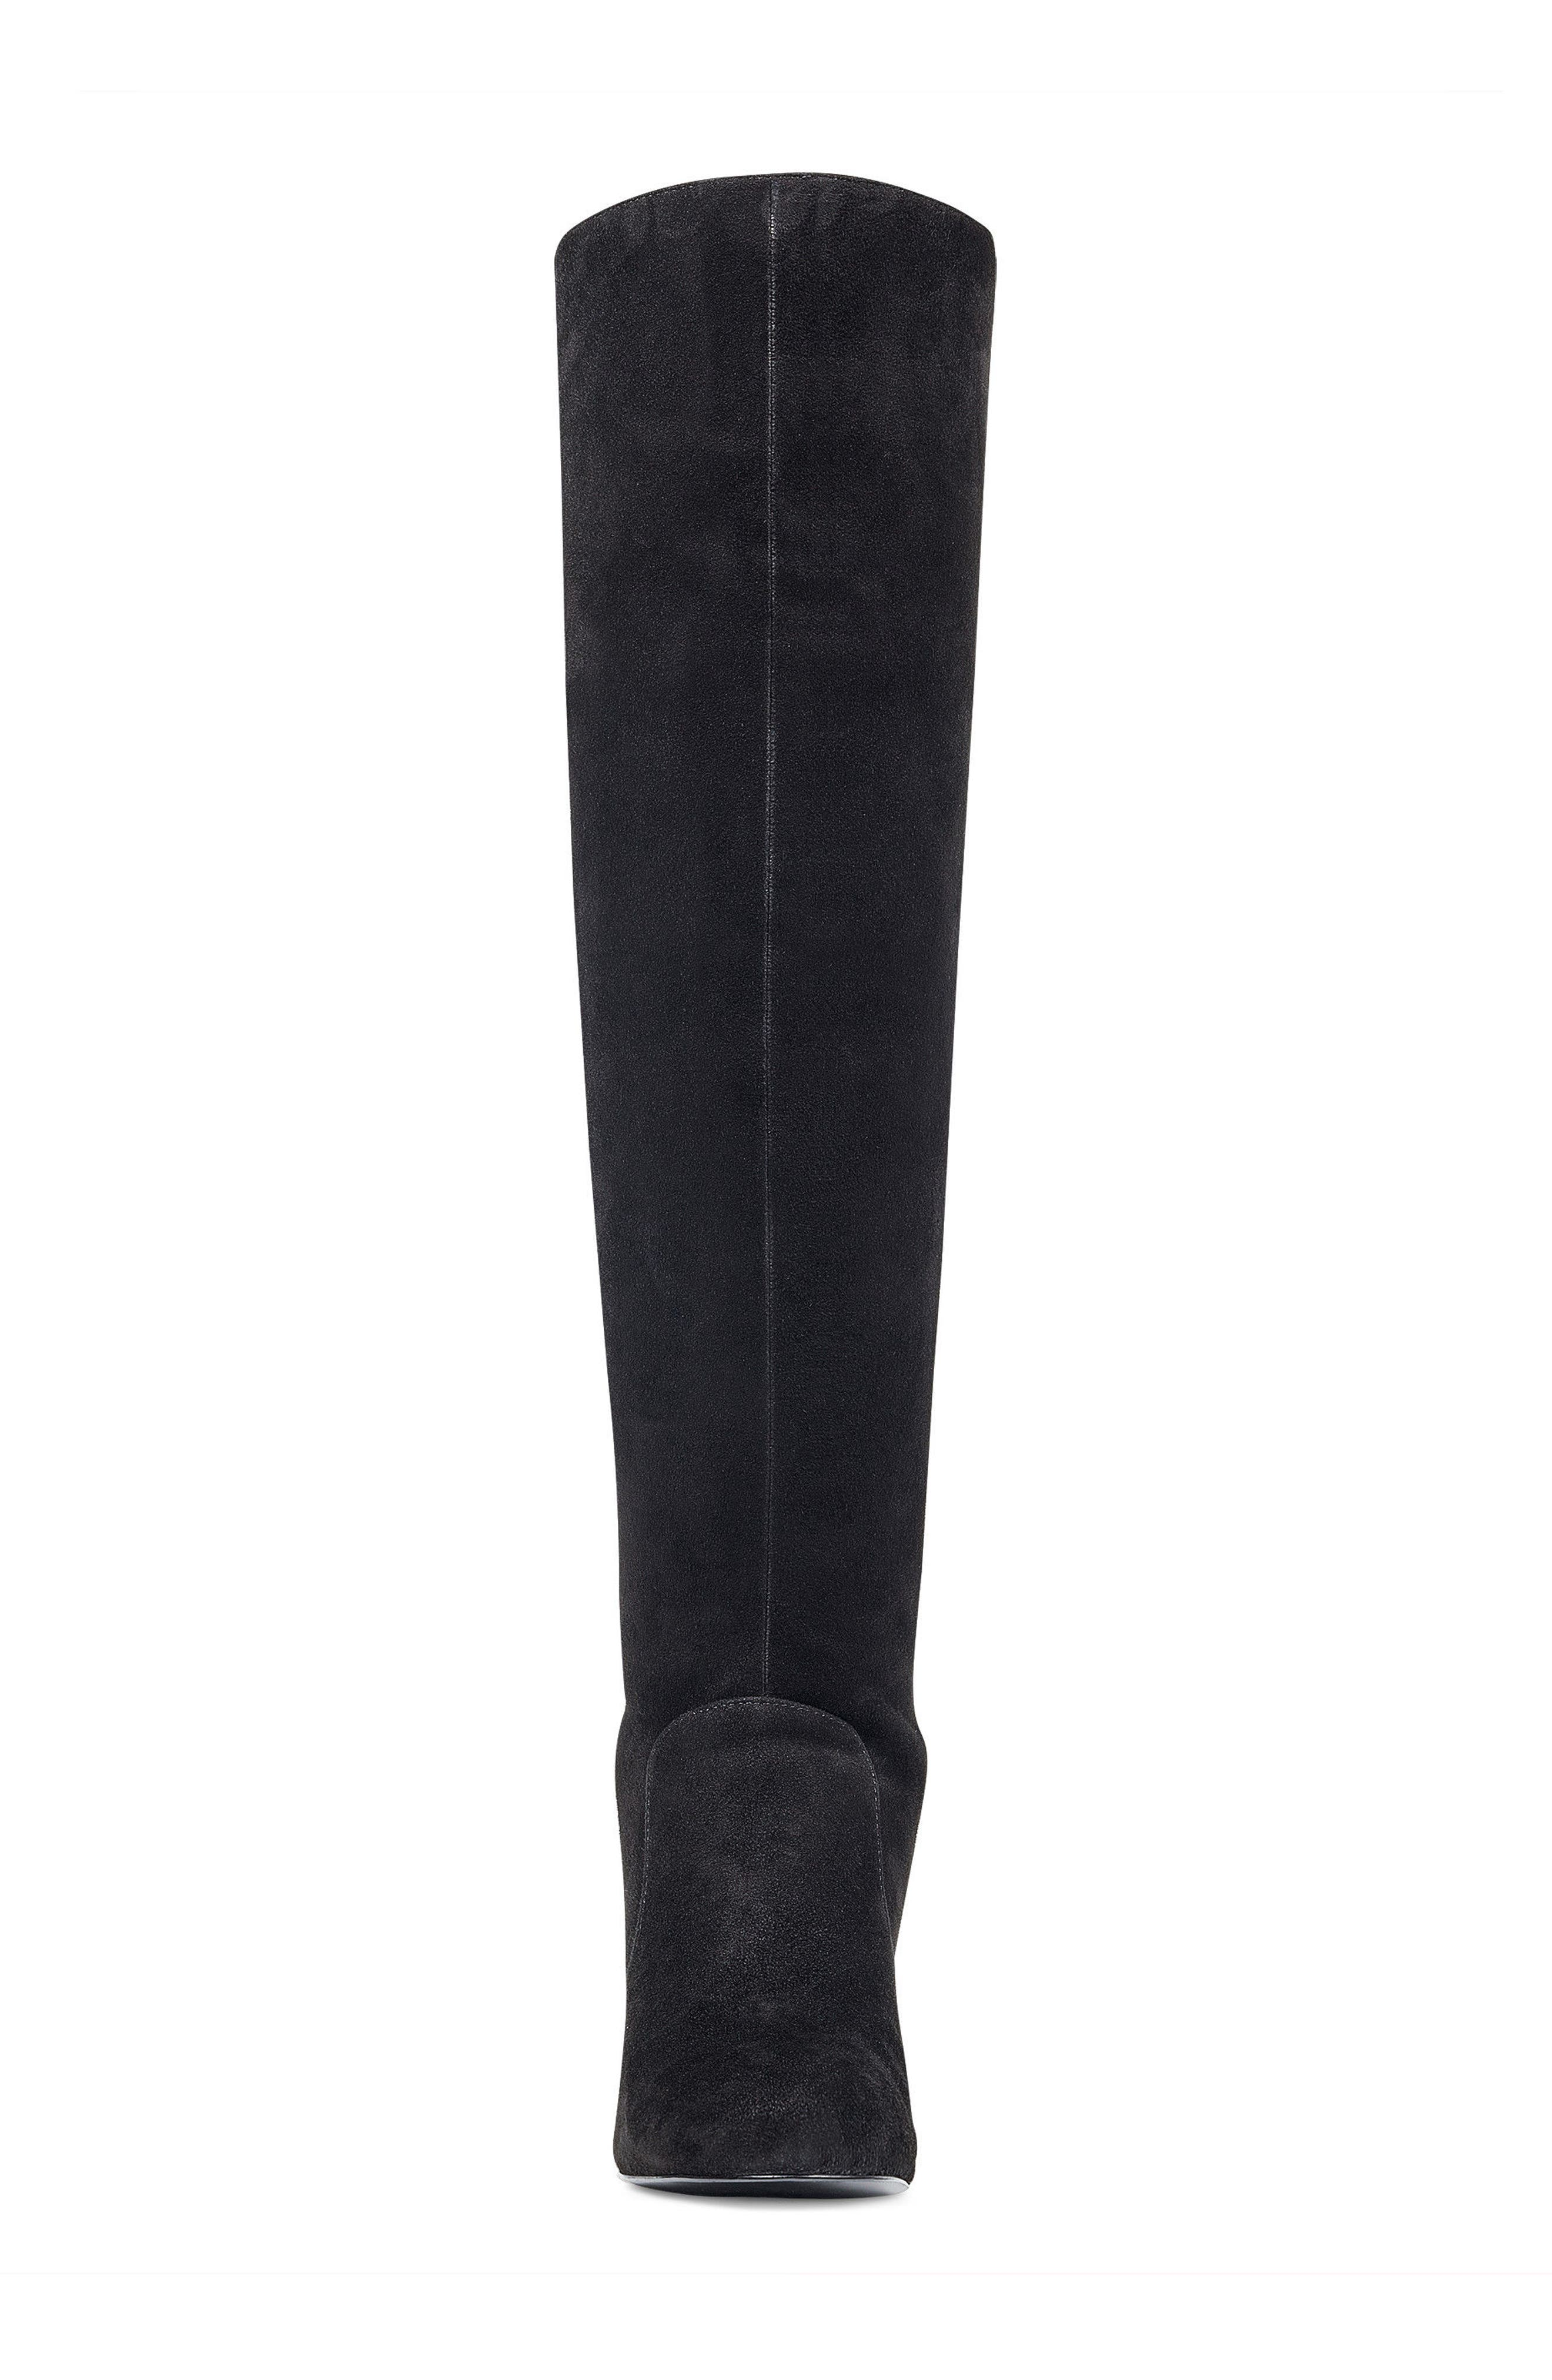 Queddy Over the Knee Boot,                             Alternate thumbnail 7, color,